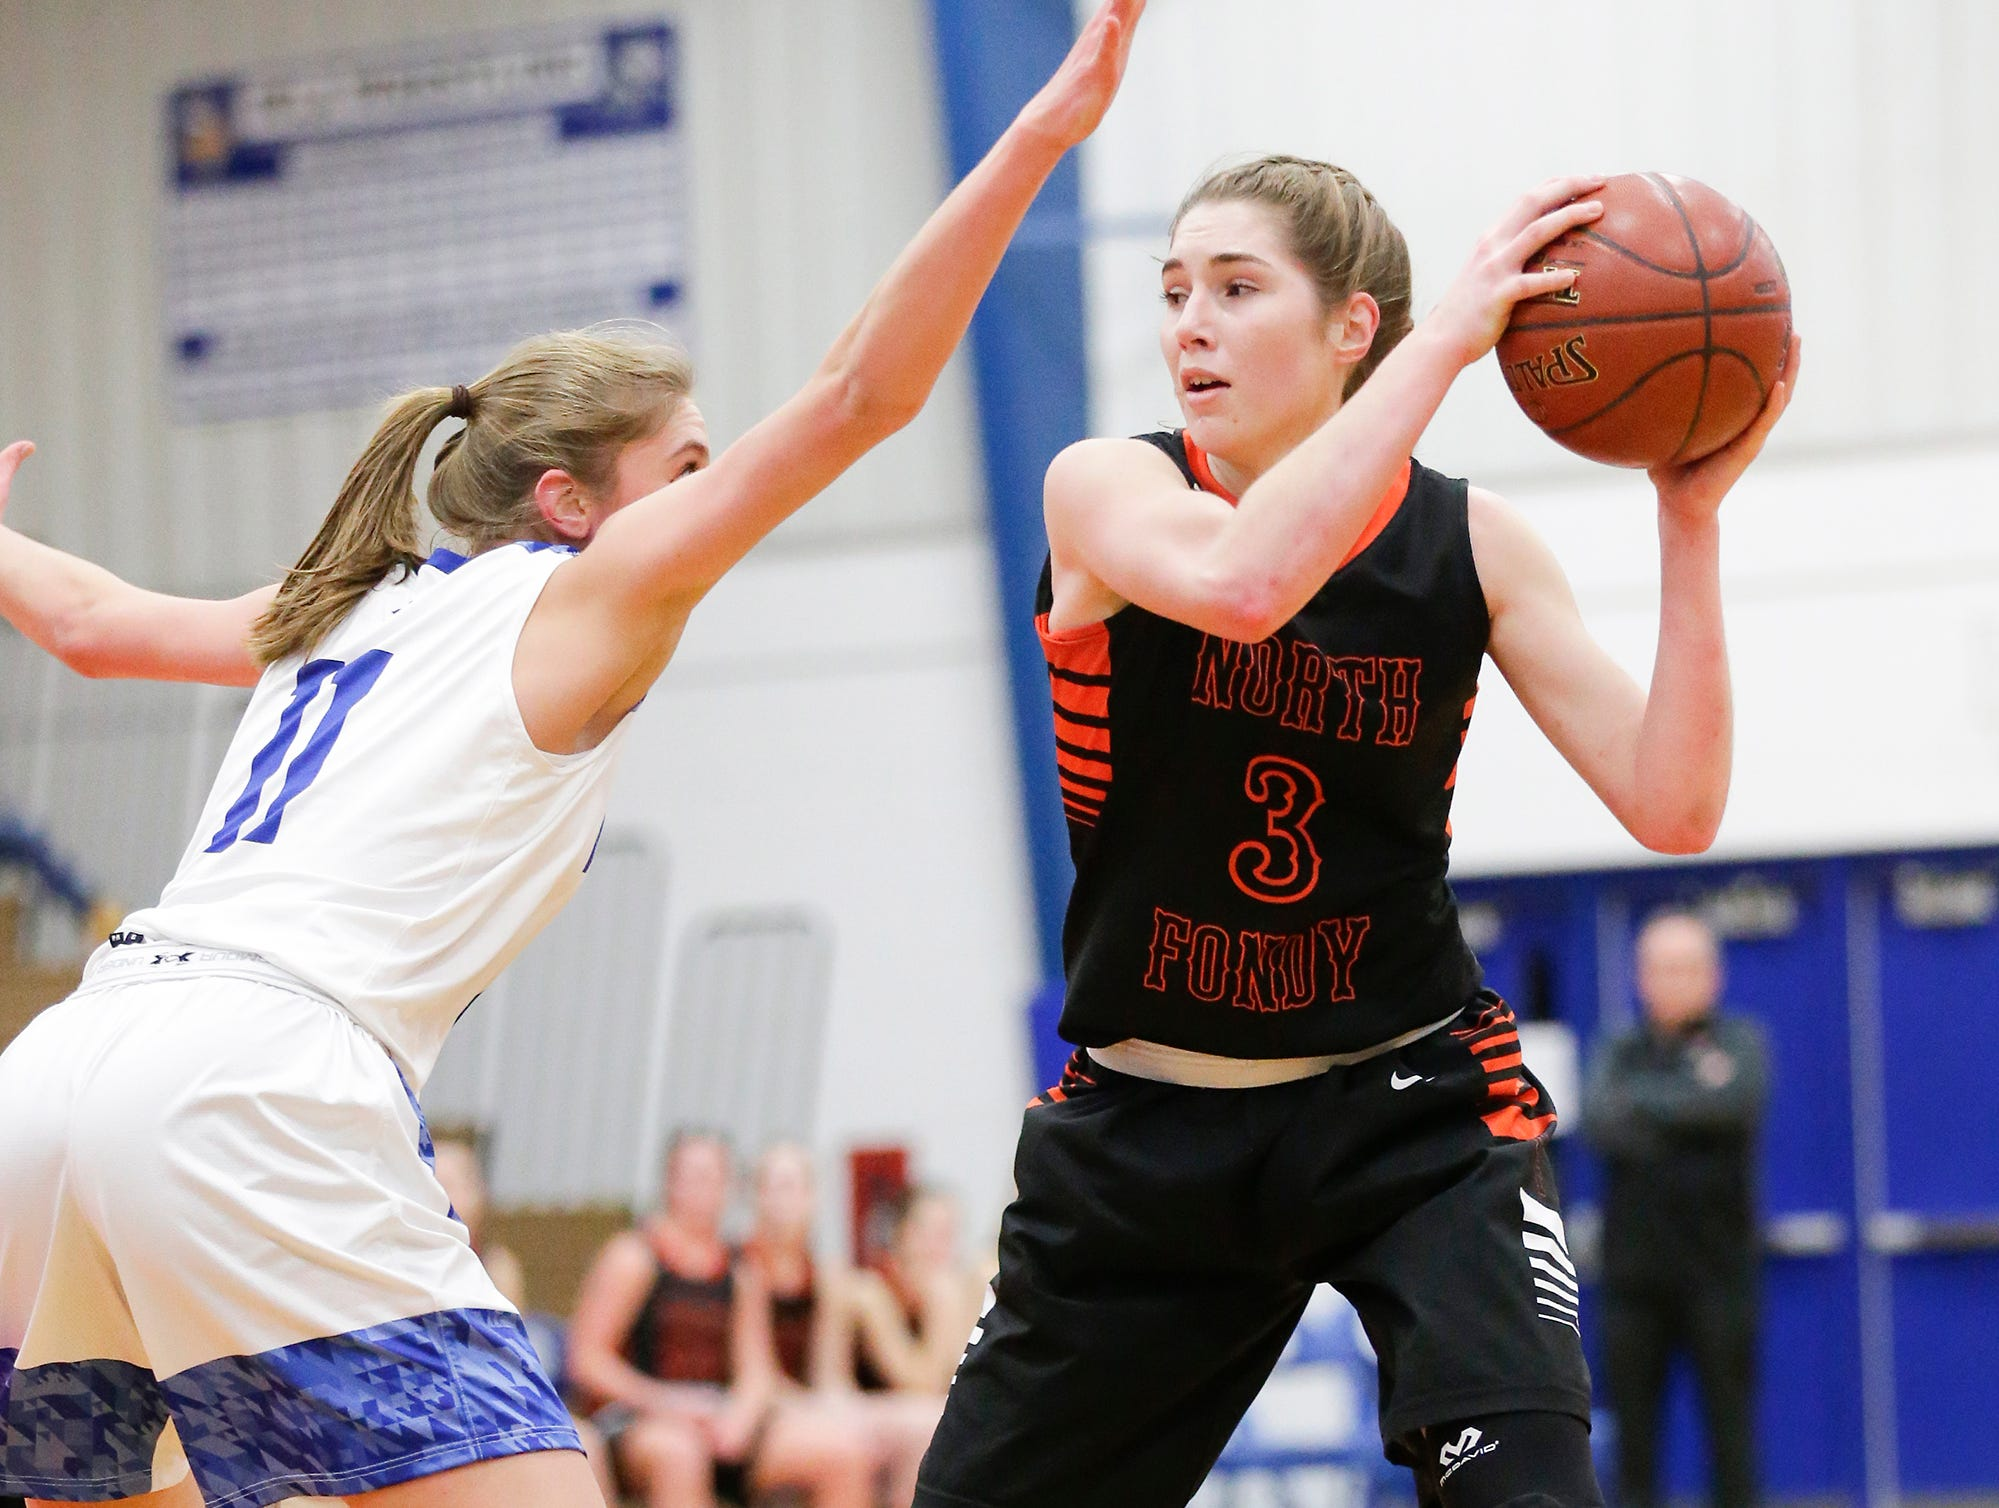 North Fond du Lac High School girls basketball's Rebecca Kingsland looks to pass the ball against Winnebago Lutheran Academy's Alyssa Lorenz January 10, 2019 during their game in Fond du Lac. Doug Raflik/USA TODAY NETWORK-Wisconsin